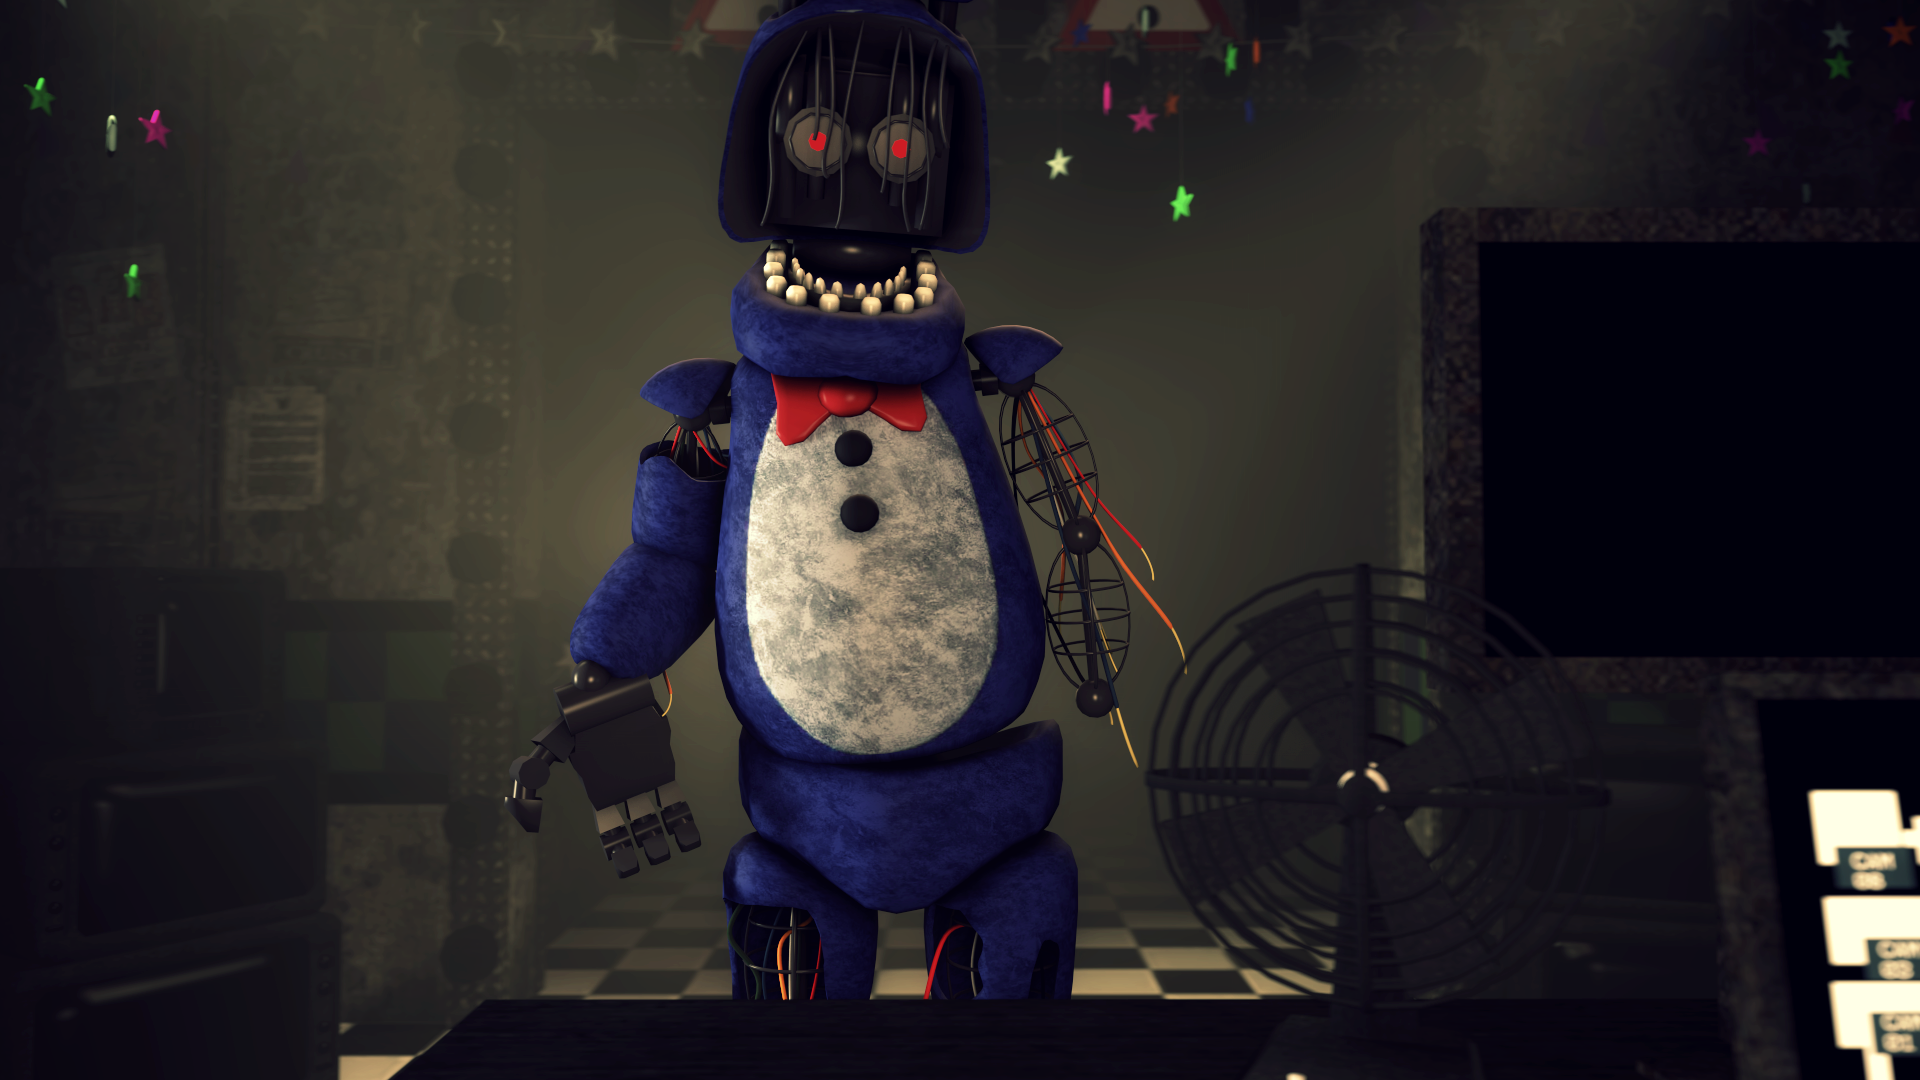 Gimme My Face Withered Bonnie Fnaf 2 Poster By Scruffygamer On Deviantart